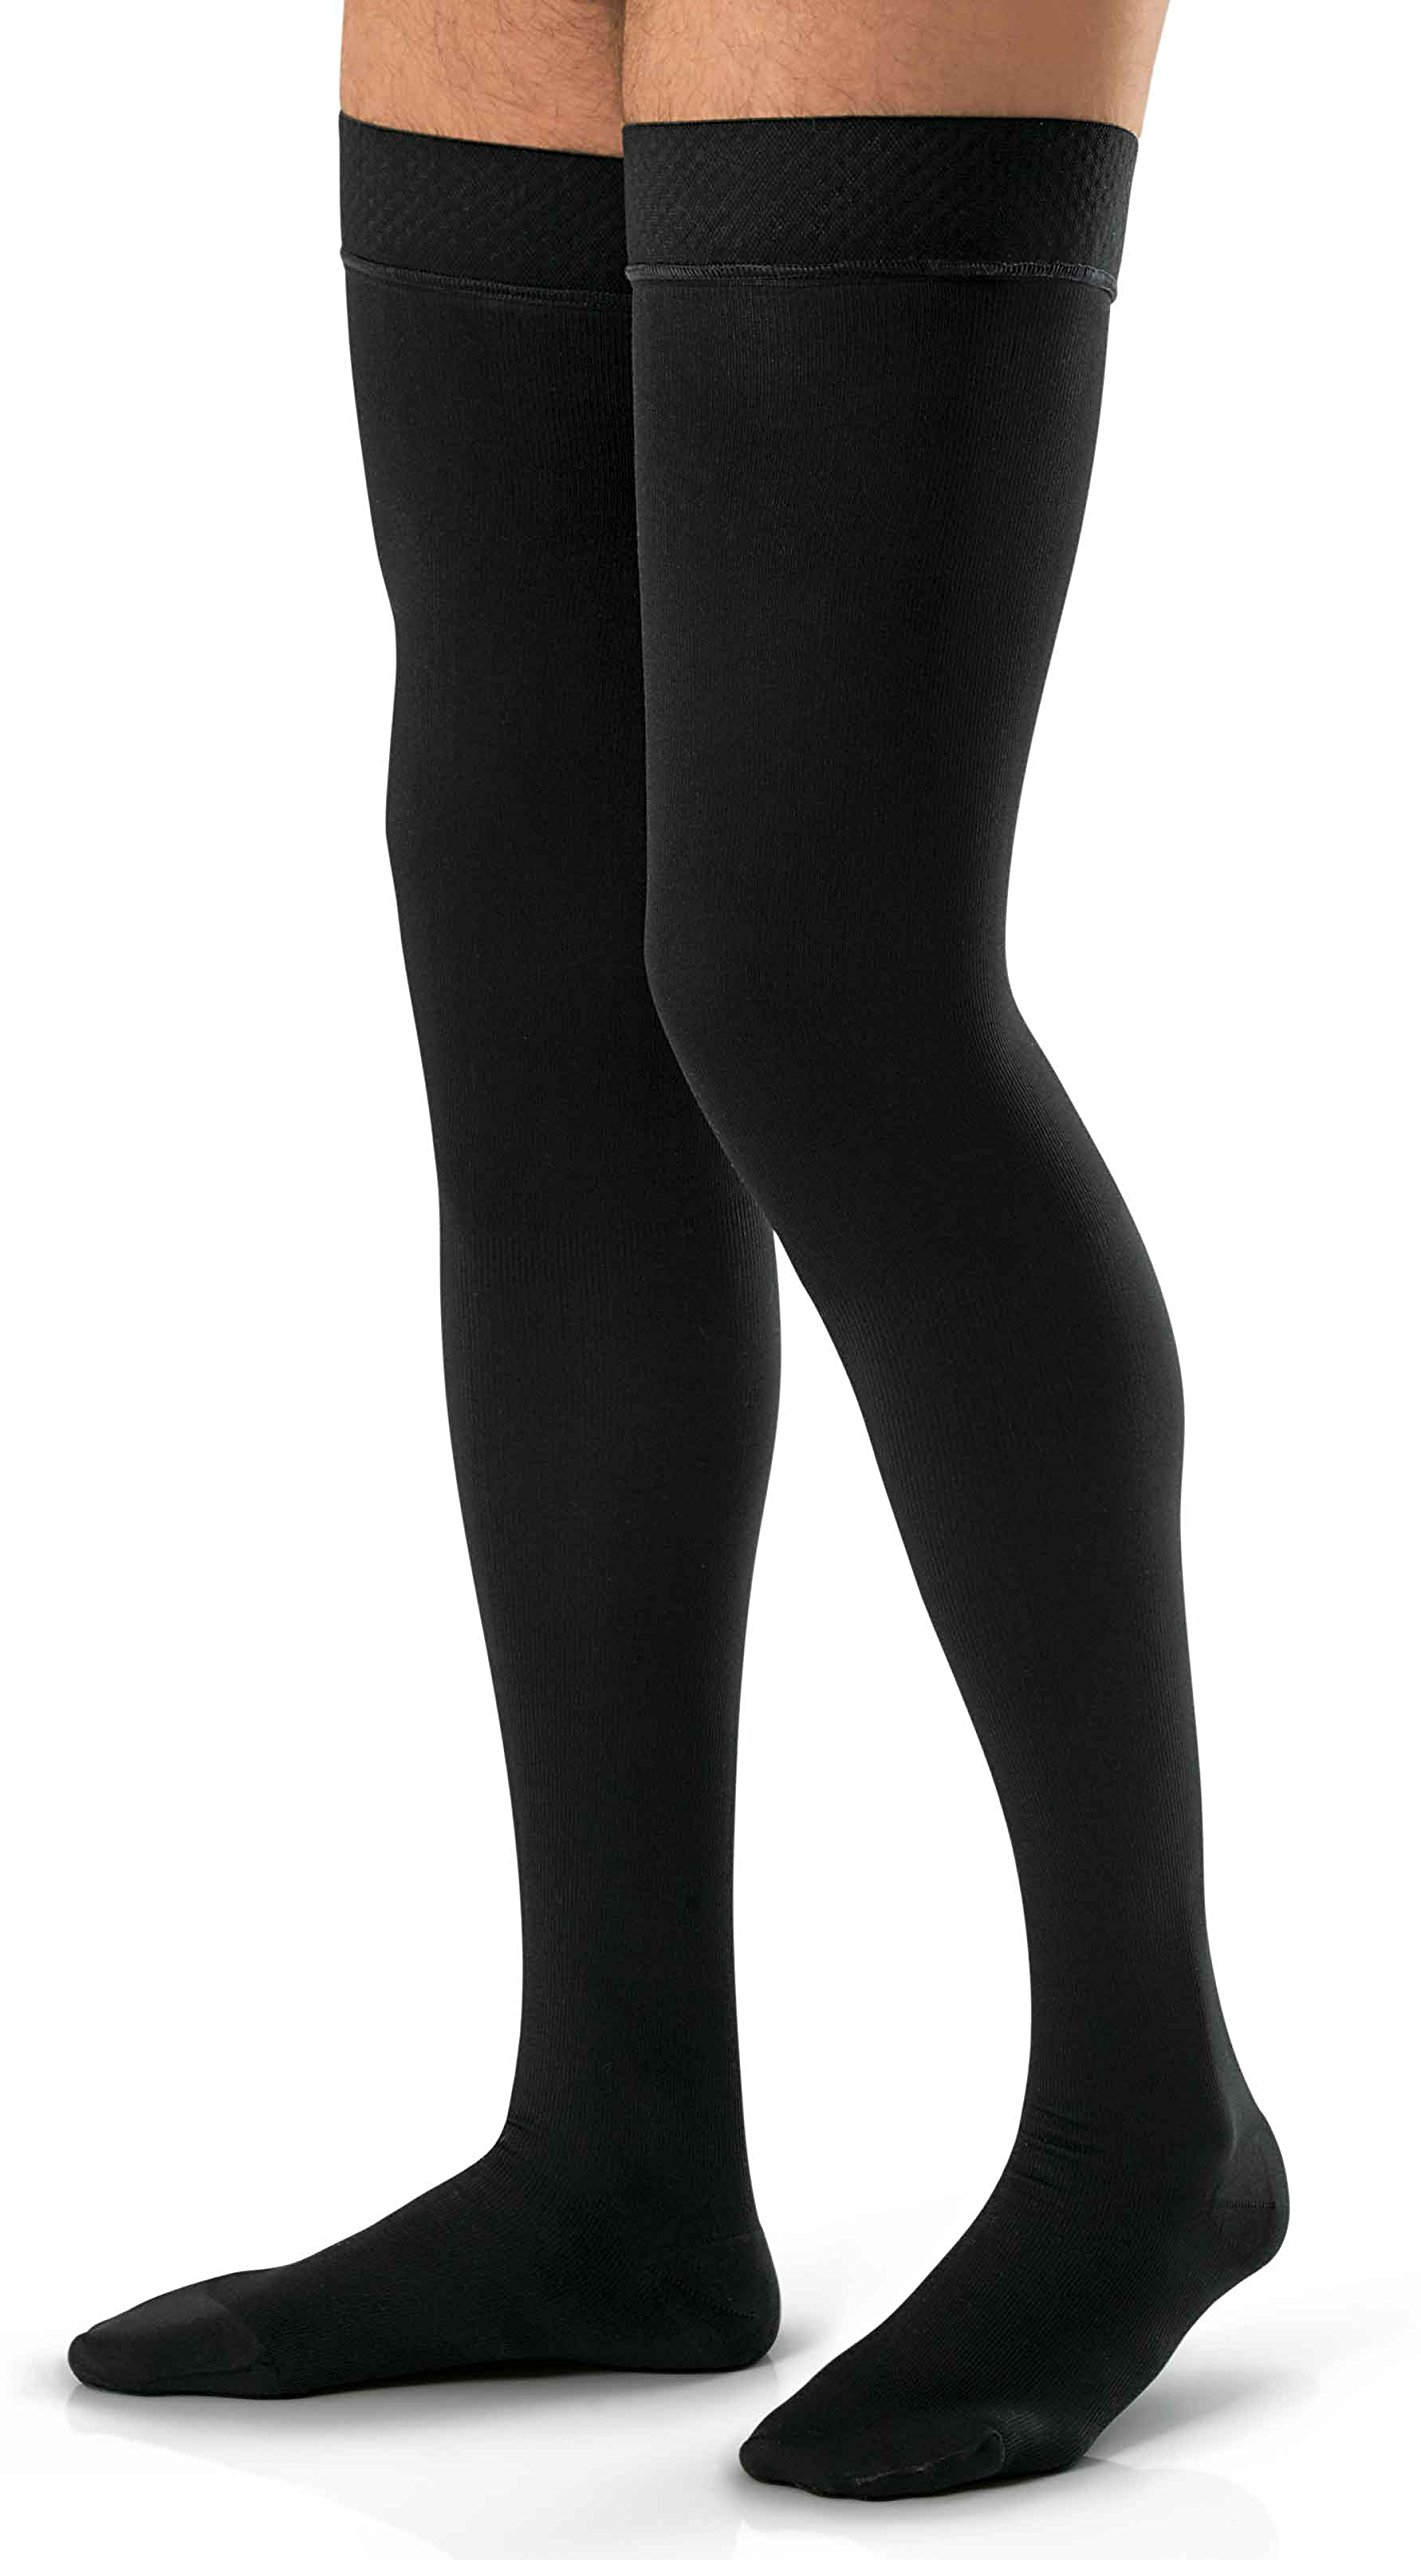 JOBST forMen Thigh High 20-30 mmHg Ribbed Dress Compression Stocking, Closed Toe, Medium, Black